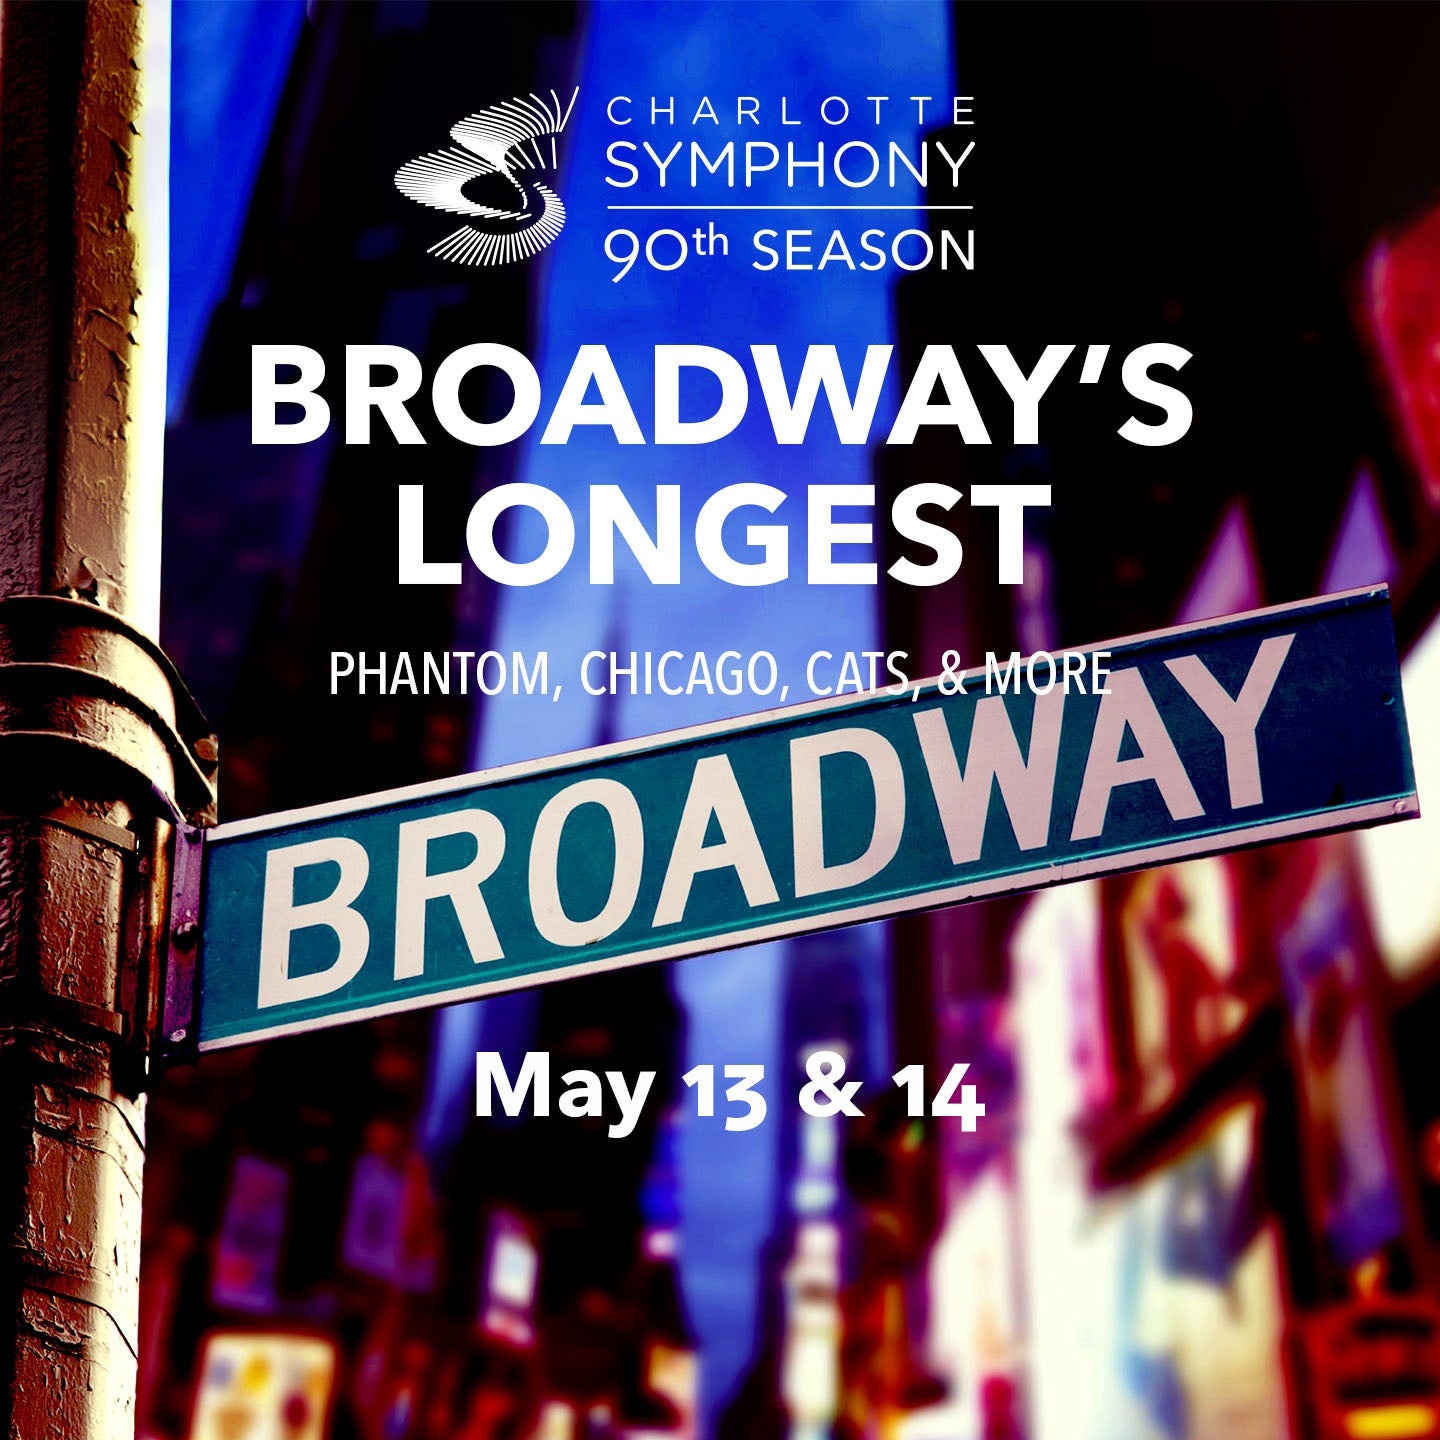 Charlotte Symphony Orchestra presents Broadway's Longest: Phantom, Chicago, Cats, & More